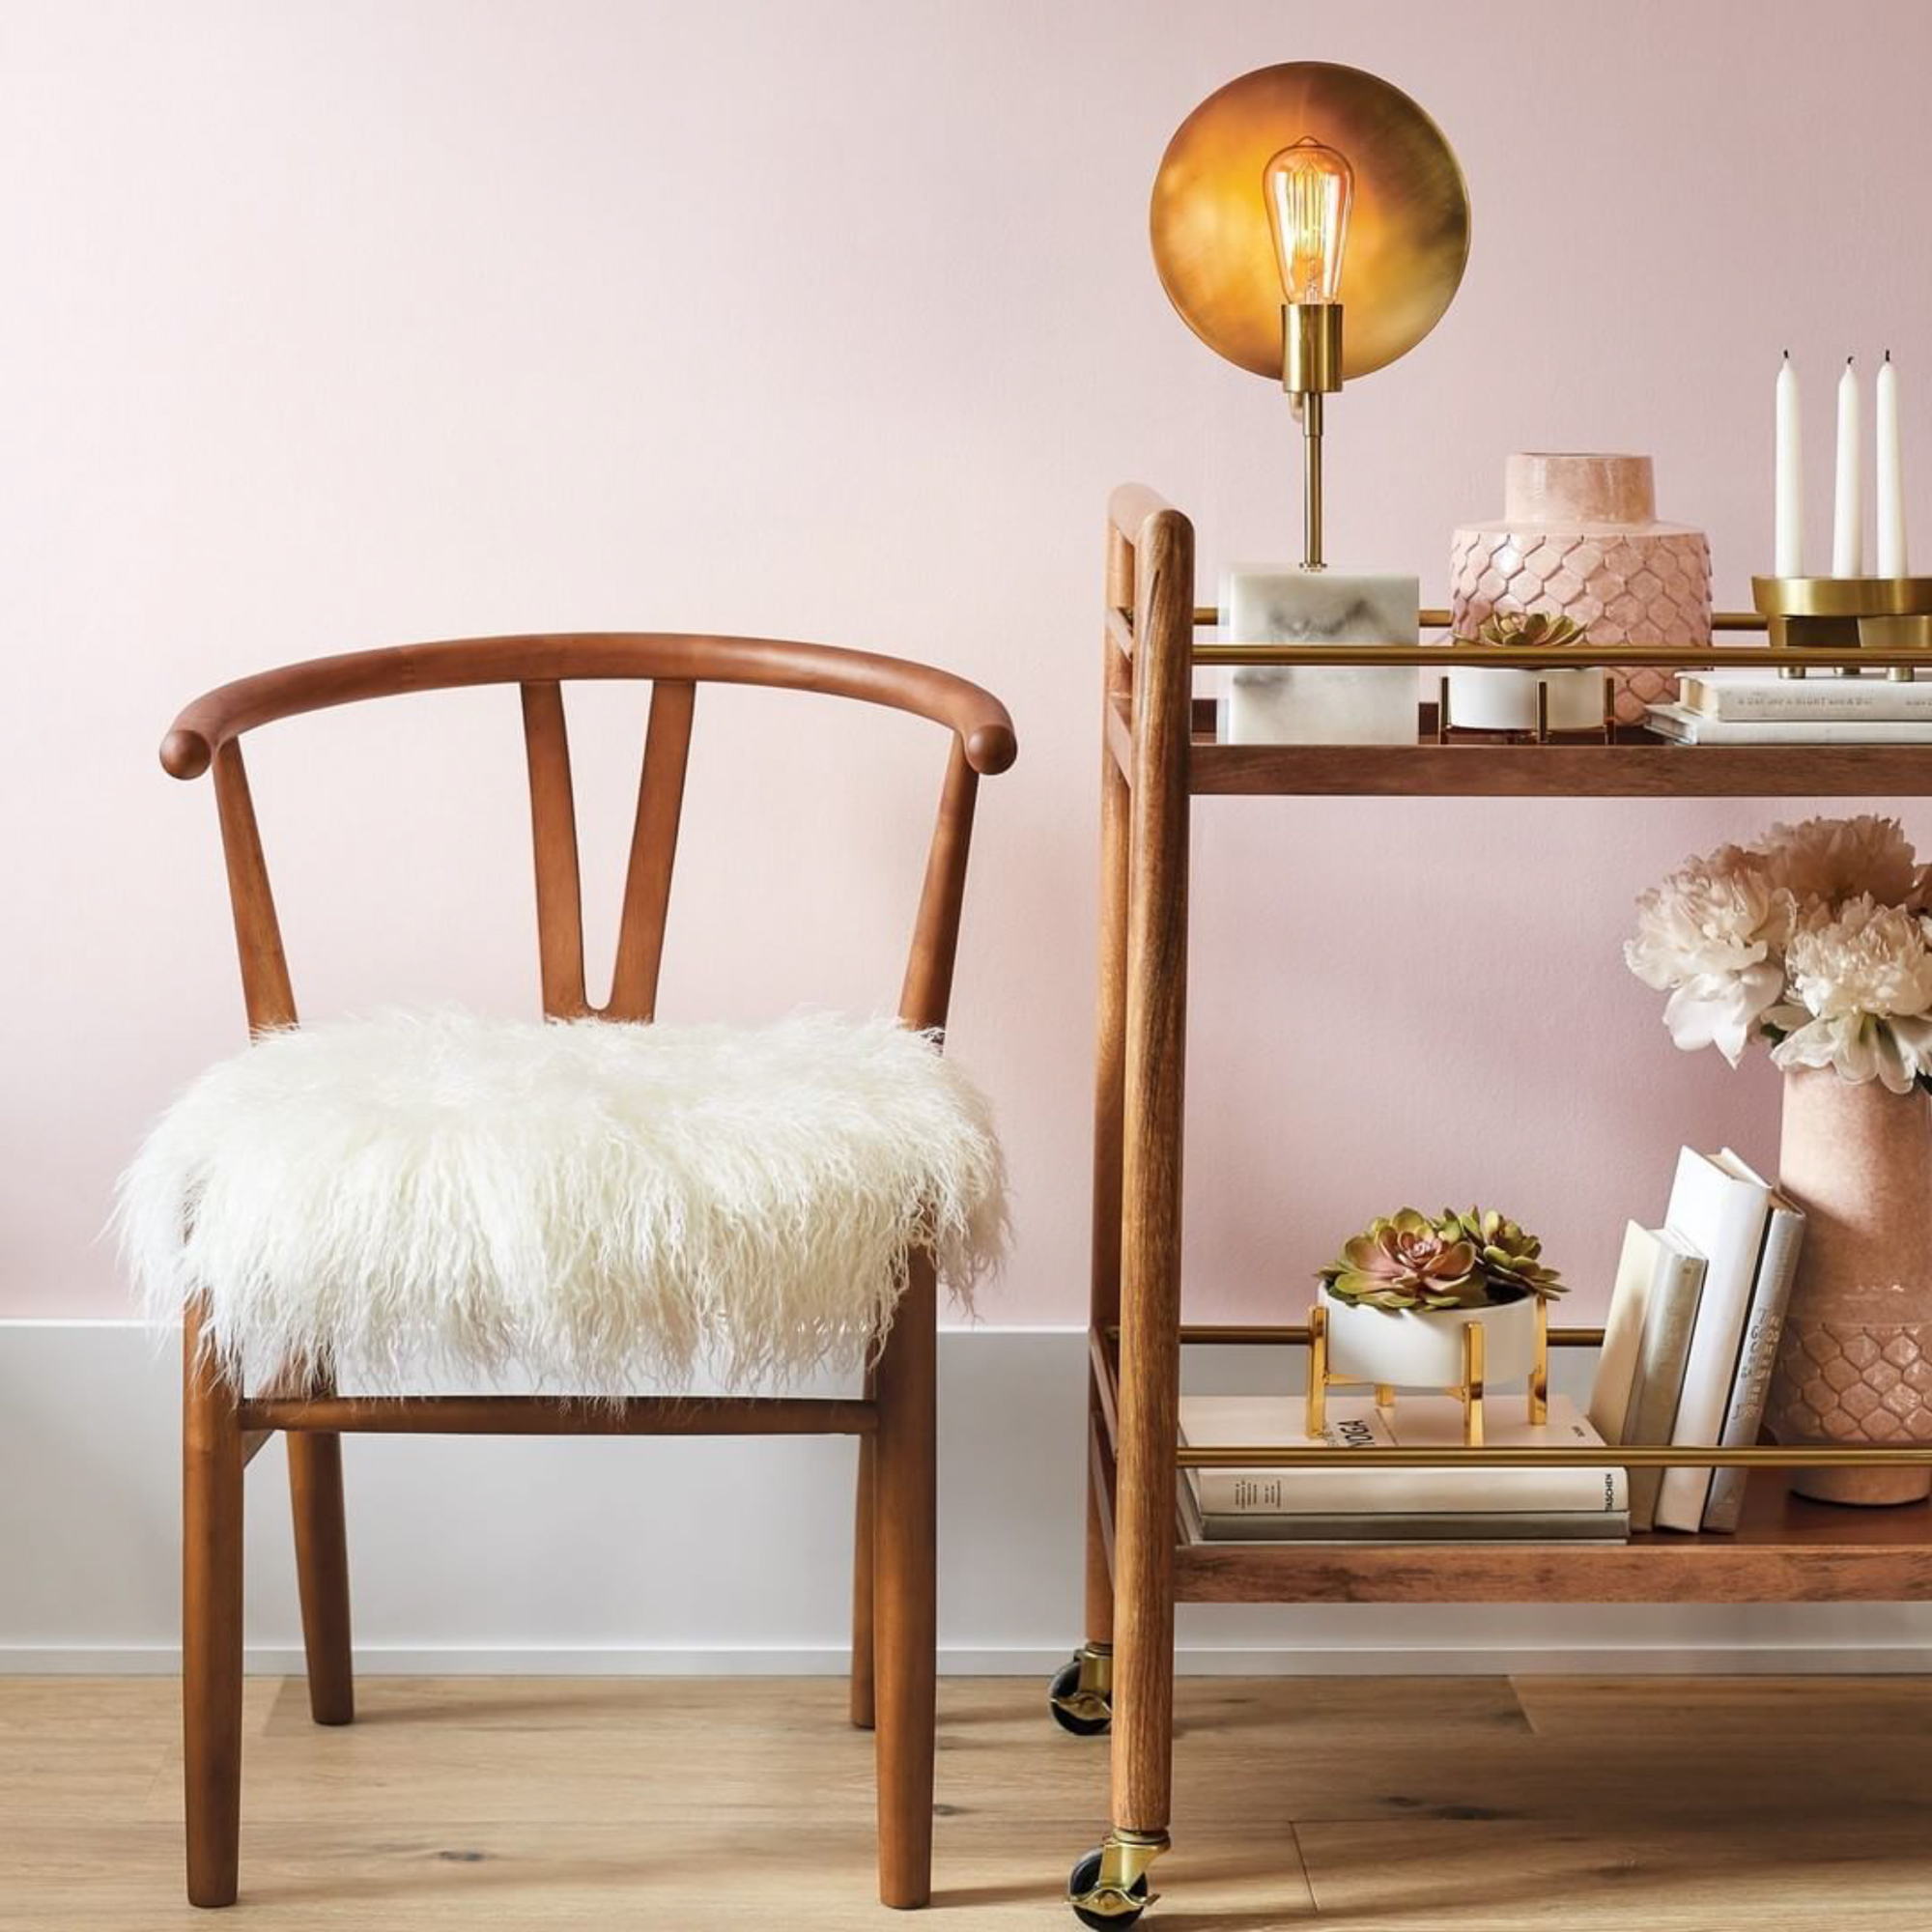 9 Gorgeous Target Home Finds Under $50